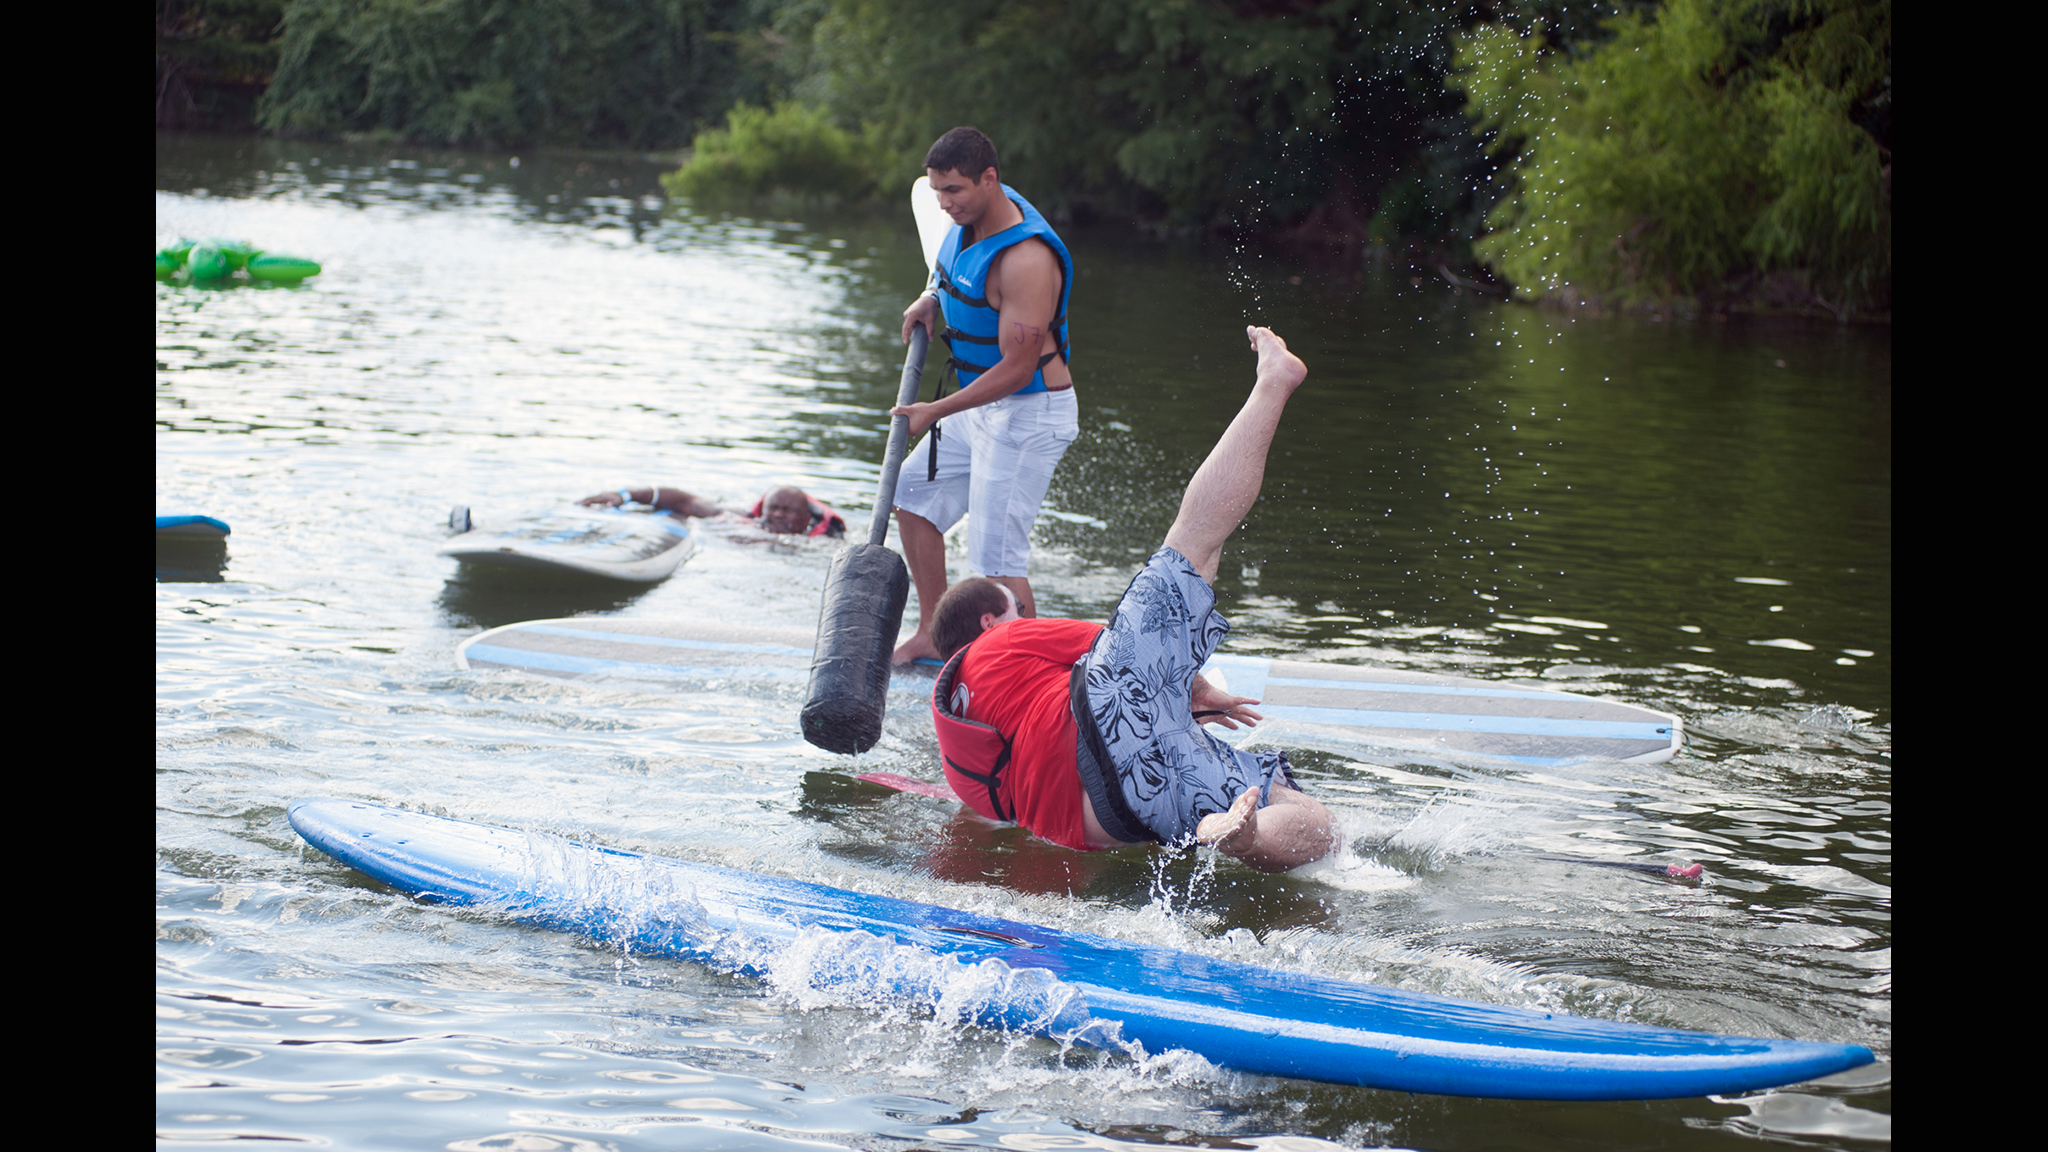 Stand-up paddle board joust